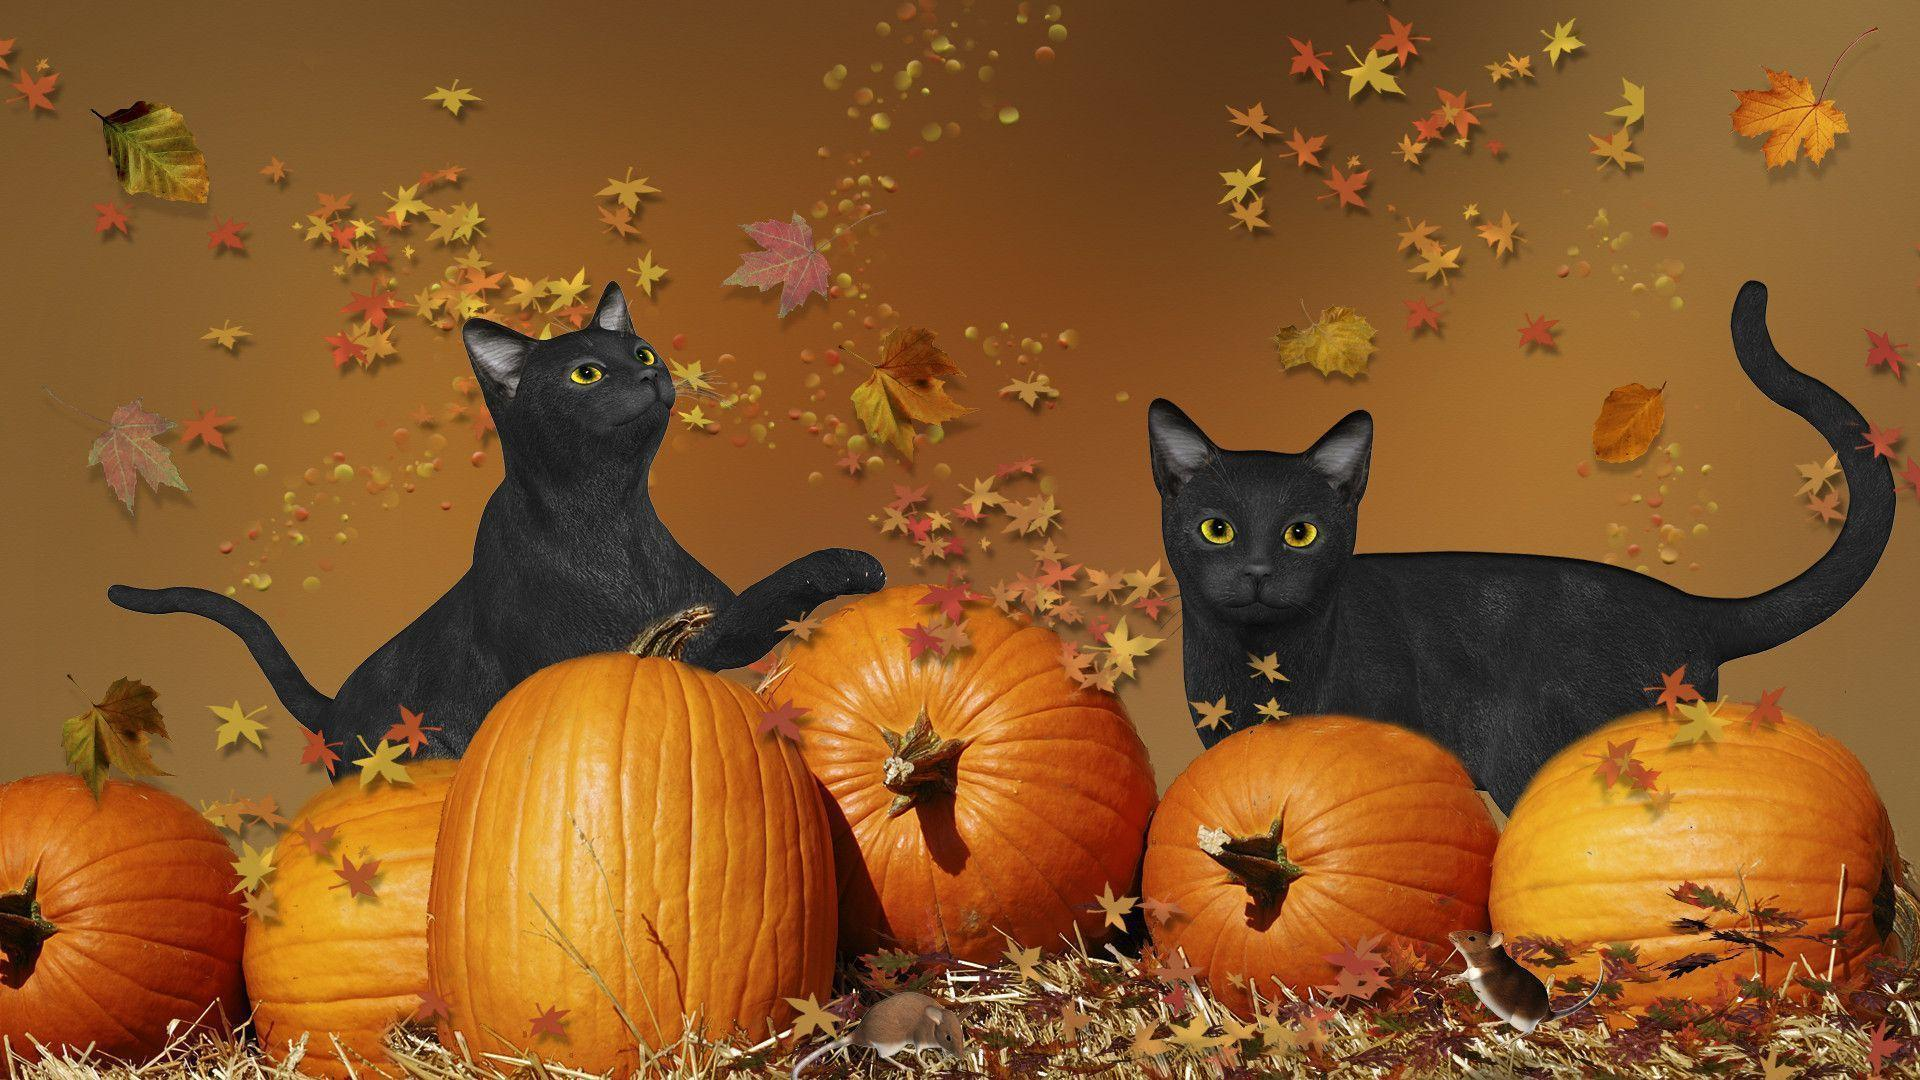 Wallpapers For > Cute Cat Halloween Wallpaper